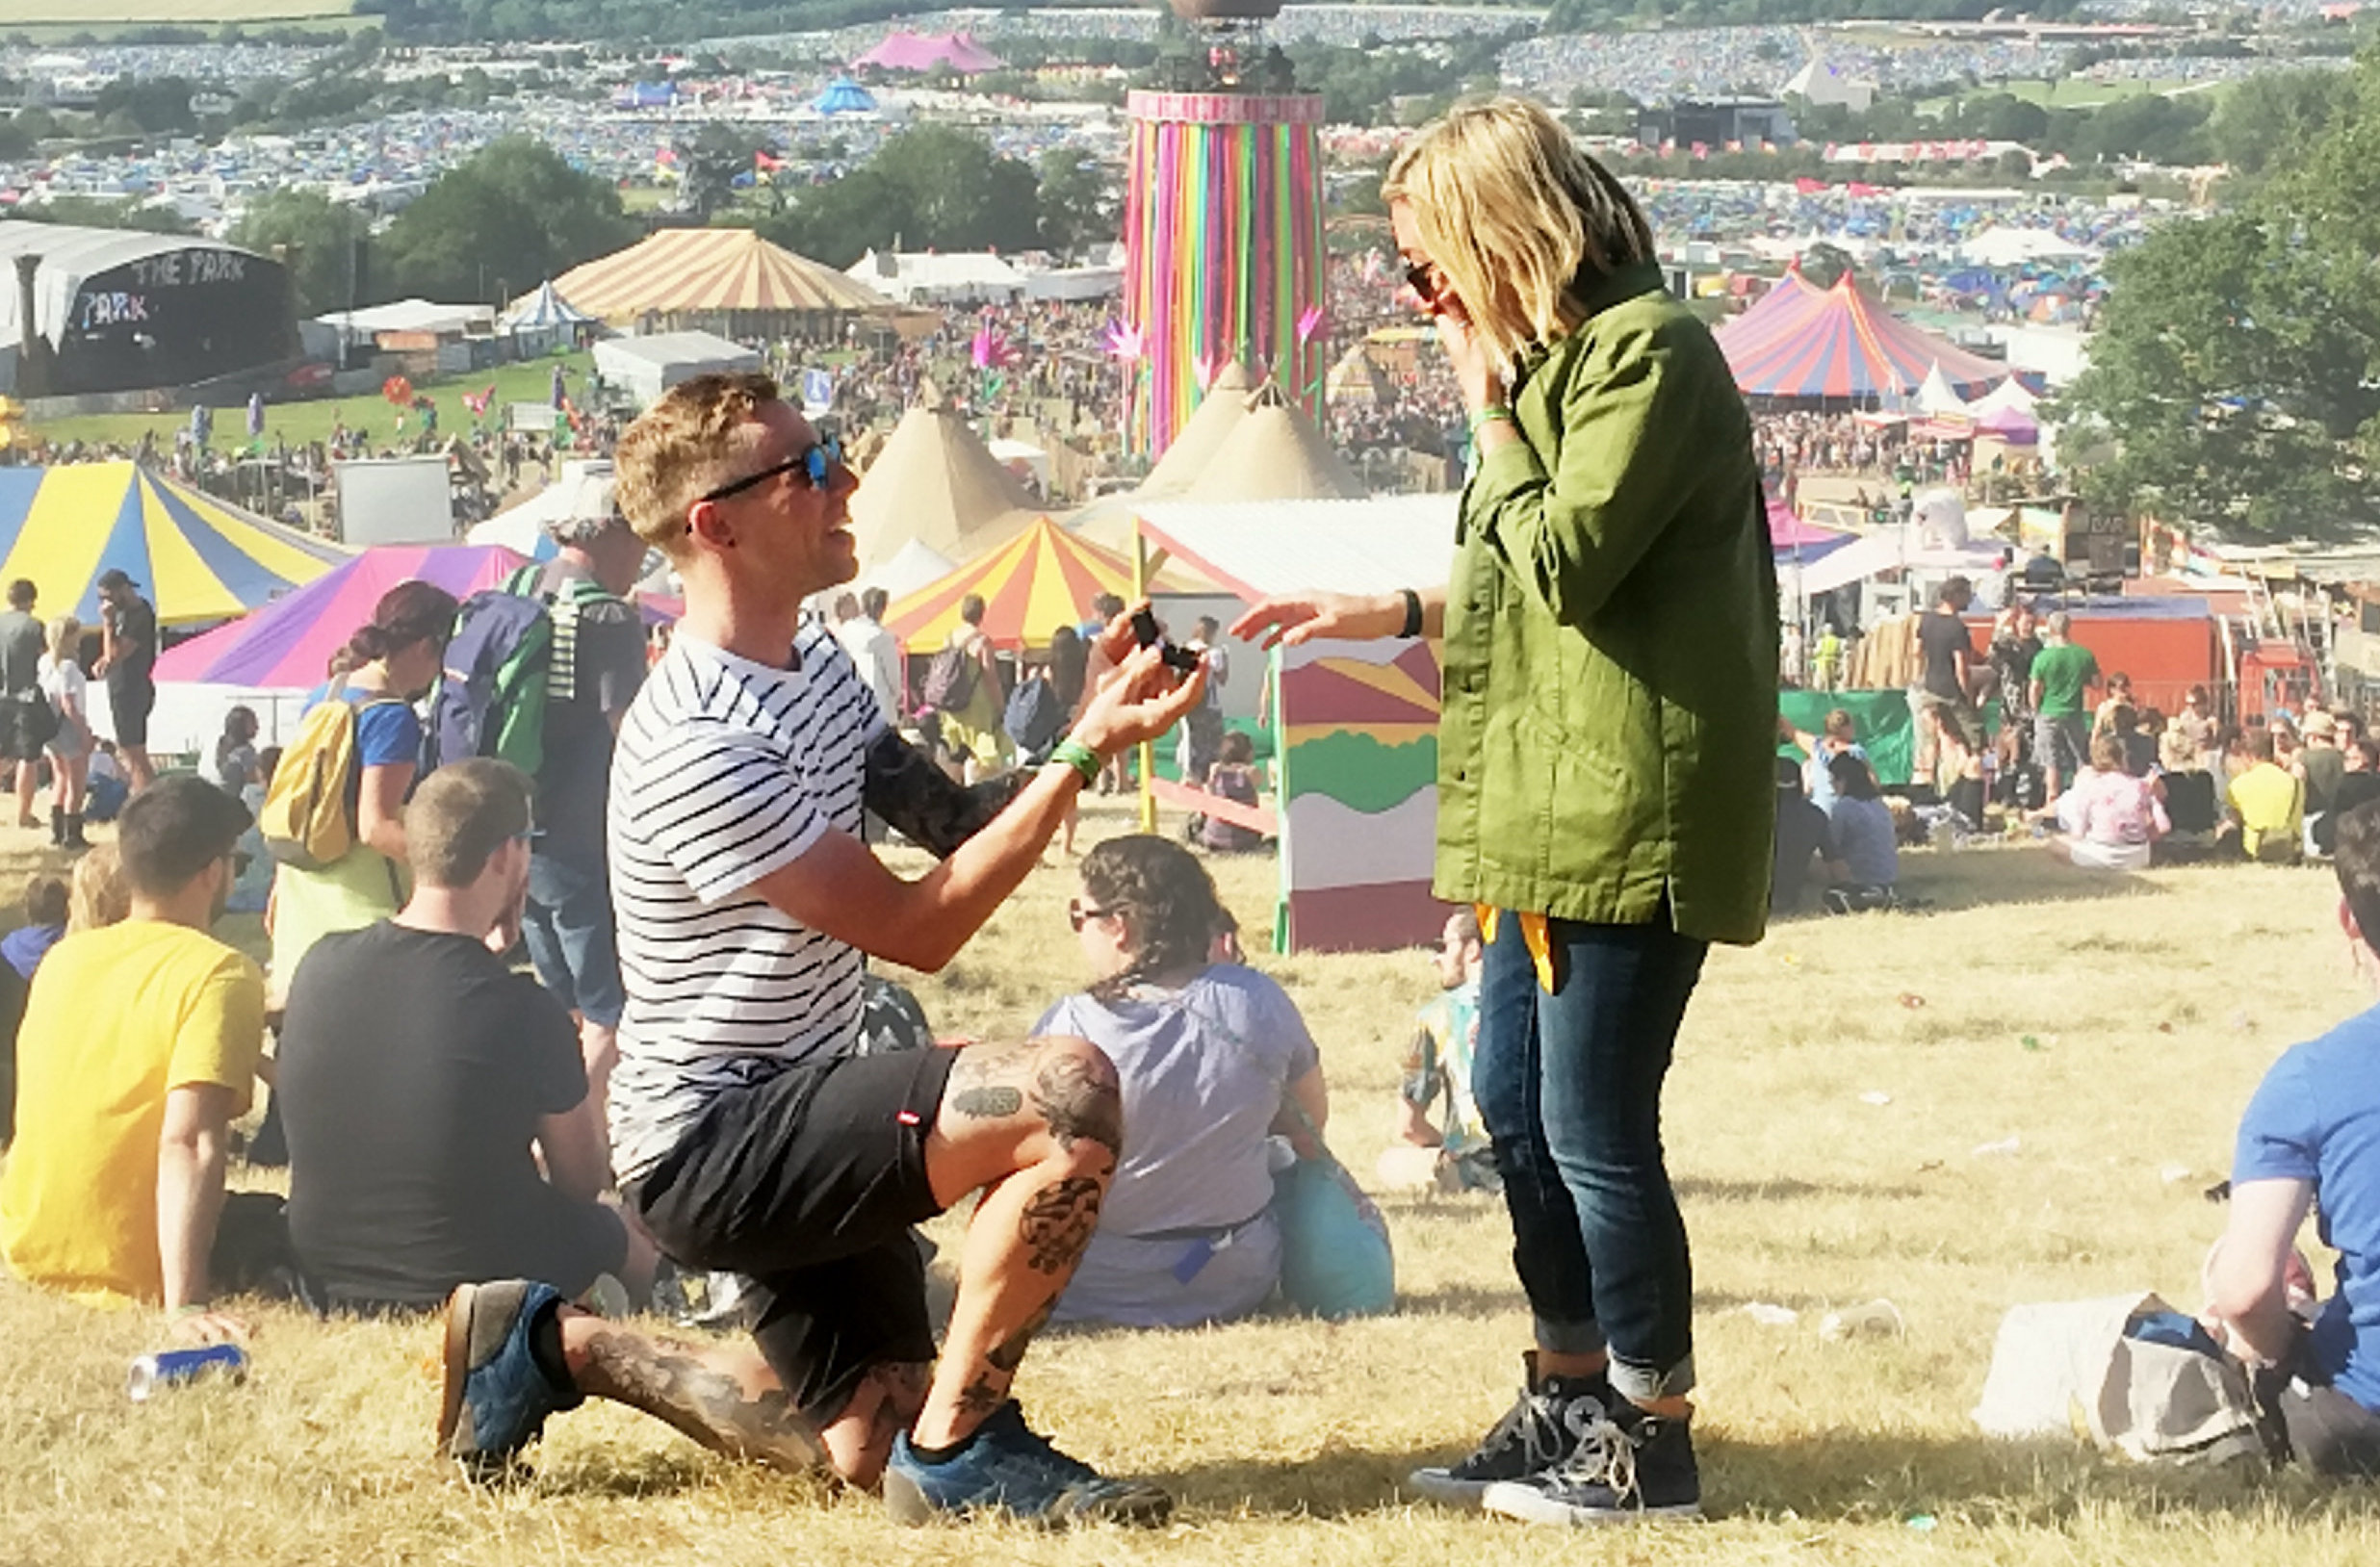 Jack proposed to Sarah in 2017... at Glasto. Credit: SWNS